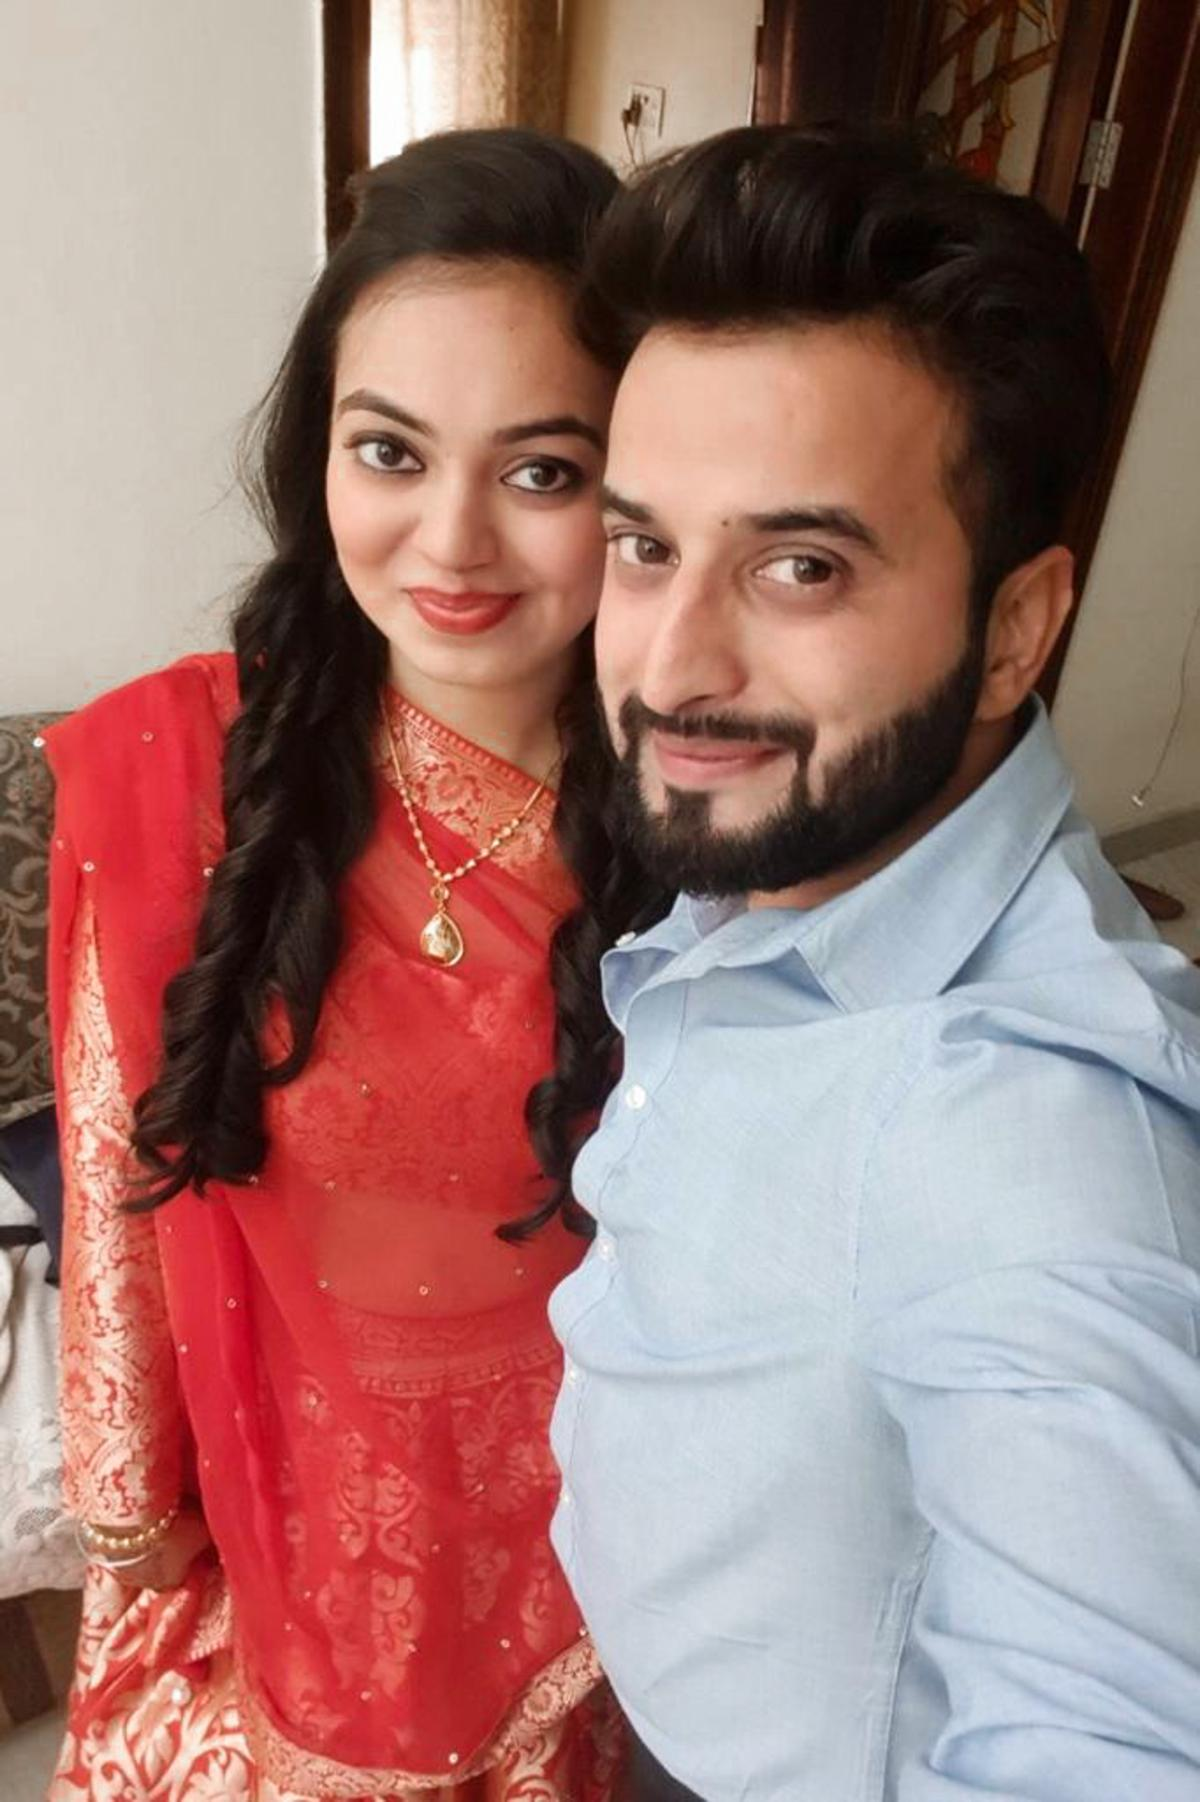 Tushar Mehta and his wife, Riddhi, on Diwali. The couple joined friends for their traditional holiday card games but used a digital version.